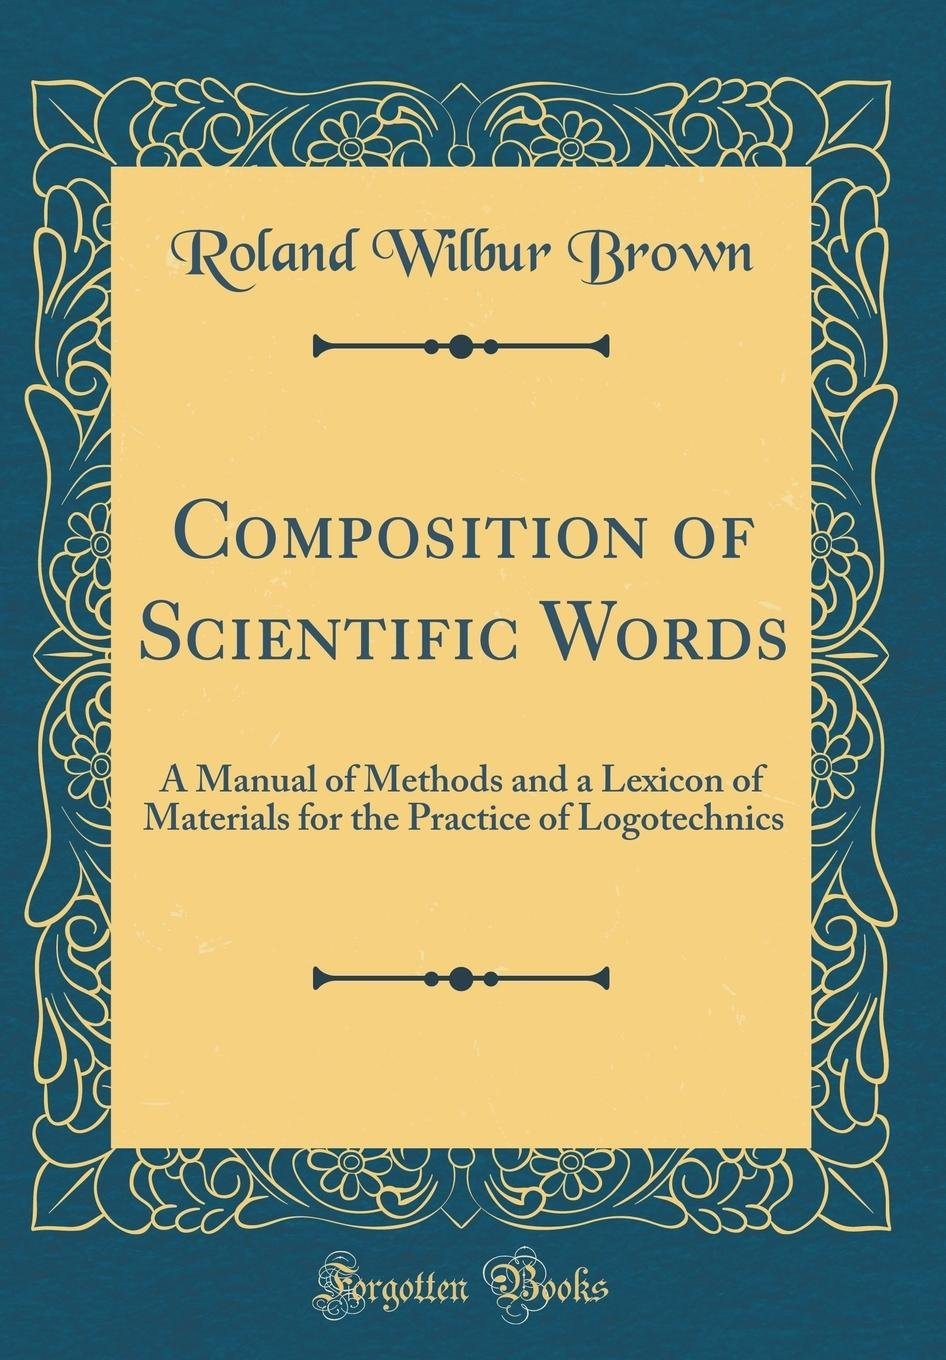 Download Composition of Scientific Words: A Manual of Methods and a Lexicon of Materials for the Practice of Logotechnics (Classic Reprint) PDF